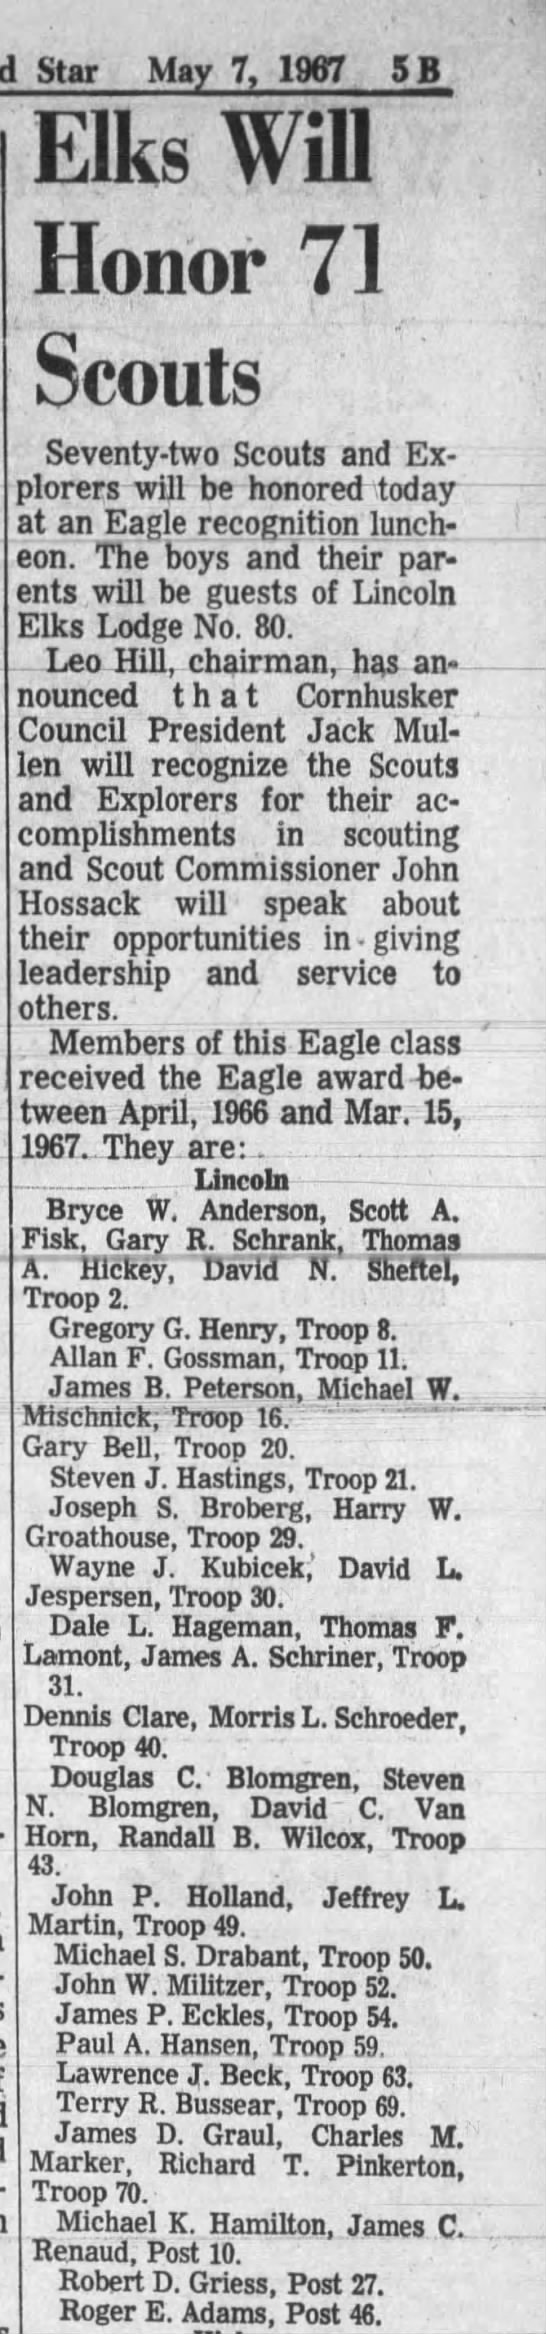 James D Graul, Elks Scout honor 7 May 1967 Lincoln Journal Star - Star May 7, 1967 5B Elks Will Honor 71 Scouts...